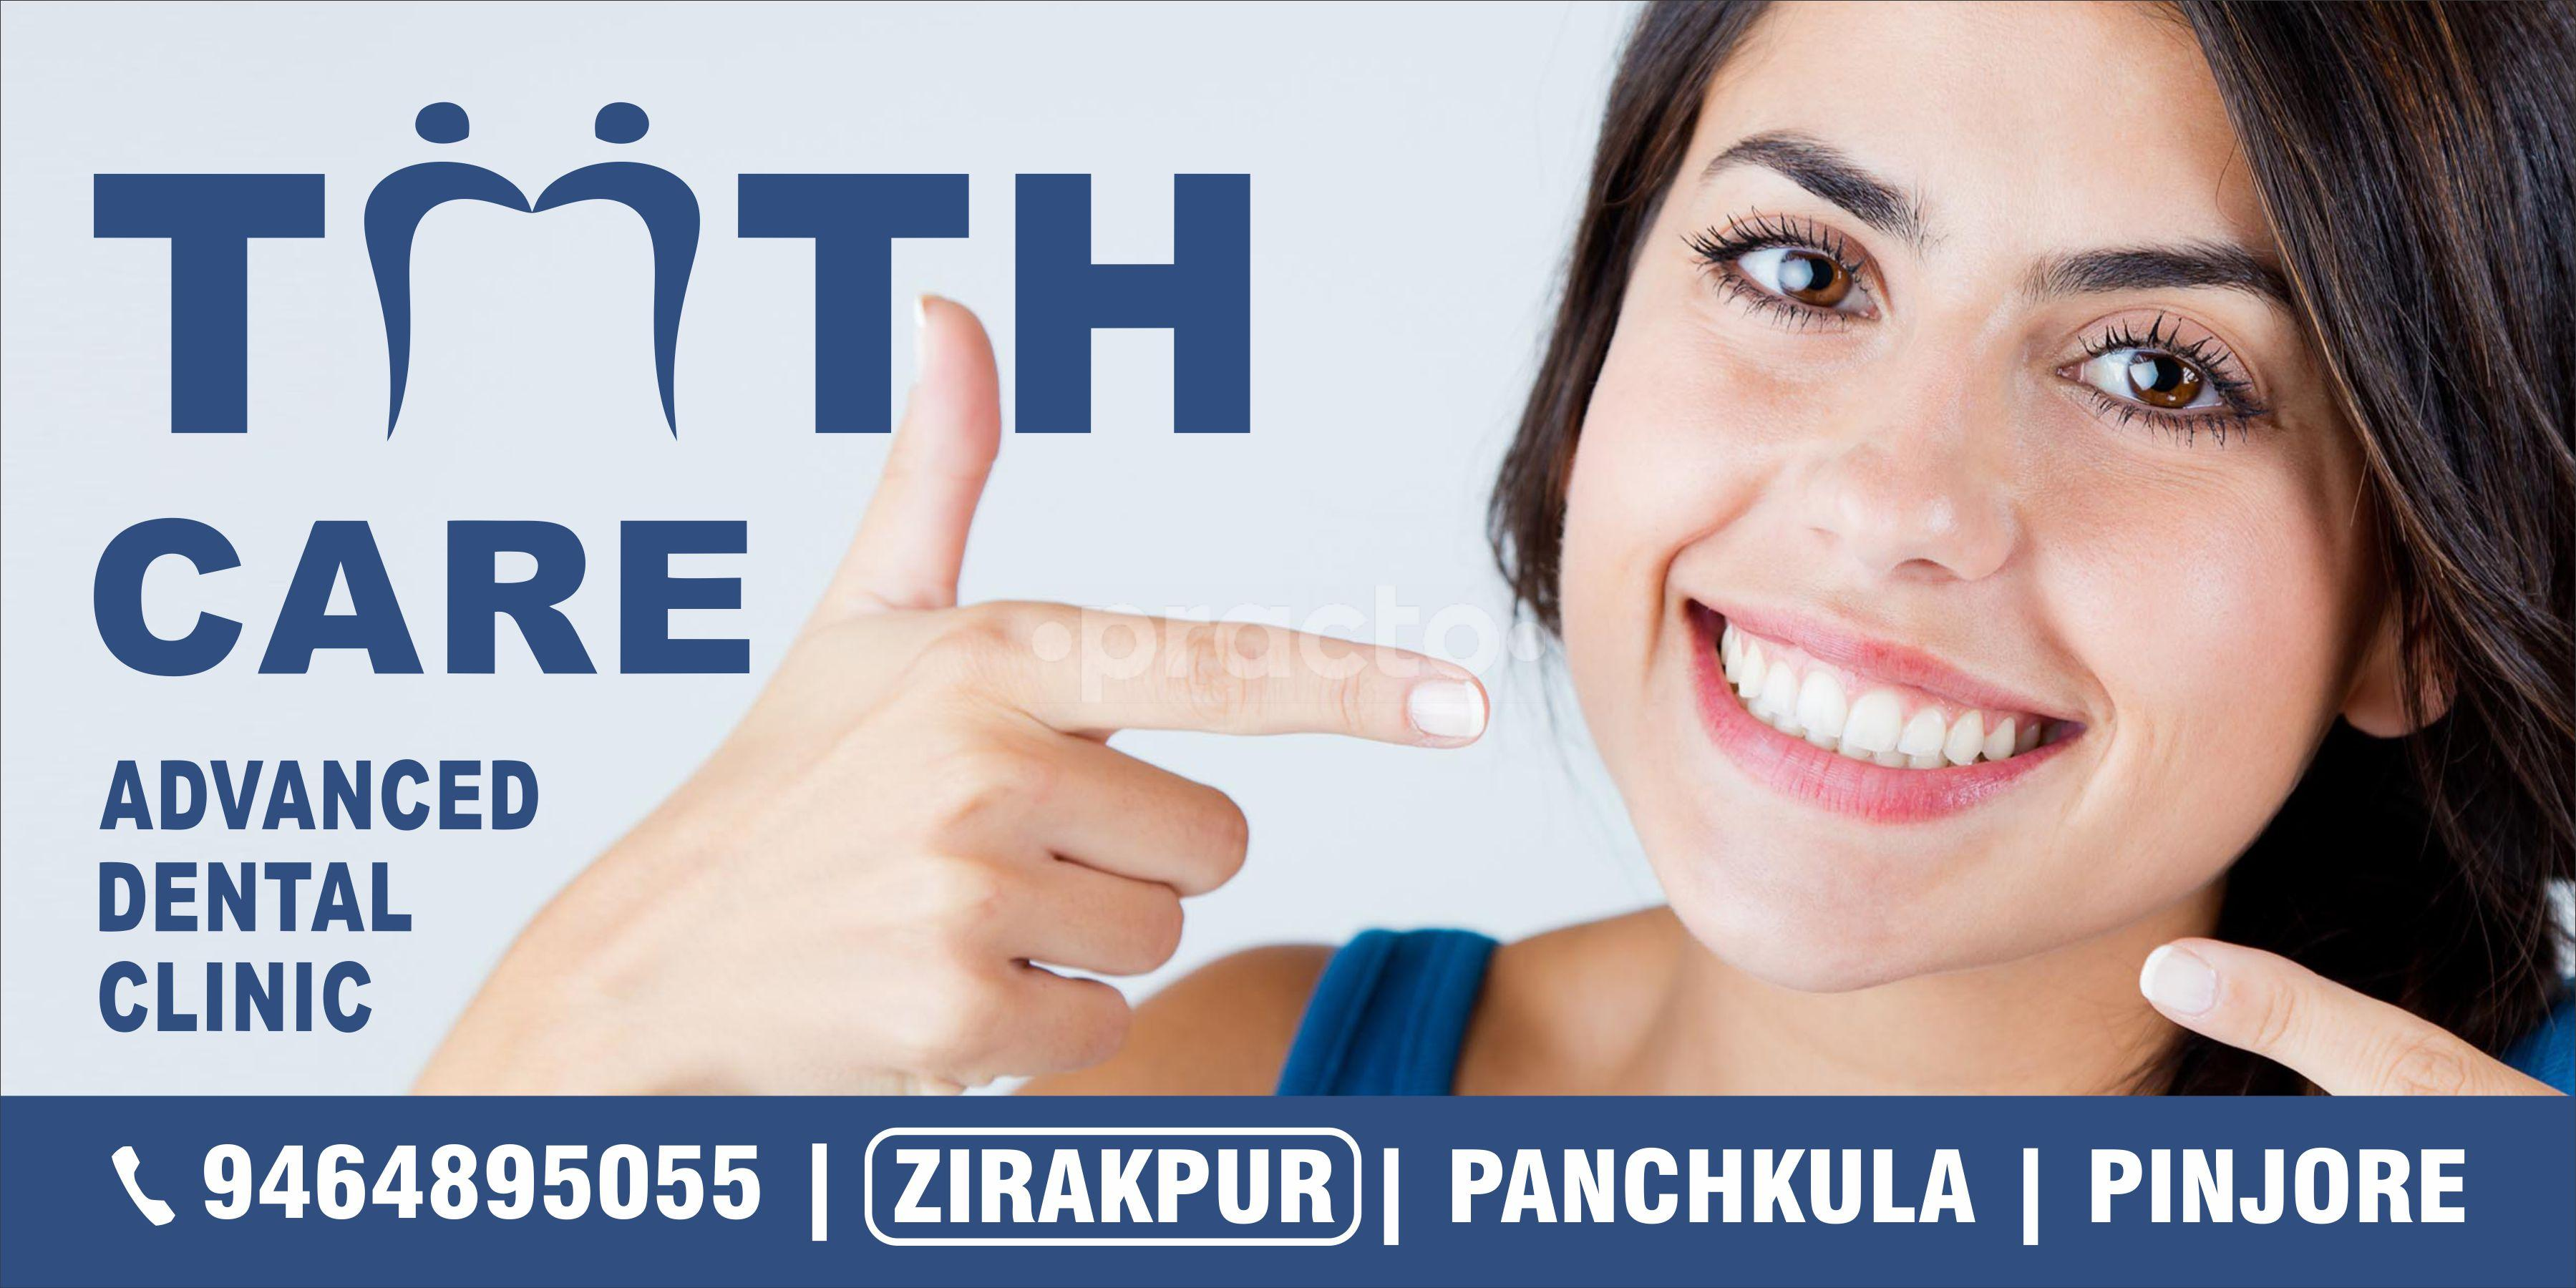 Tooth Care Dental Clinic Zirakpur